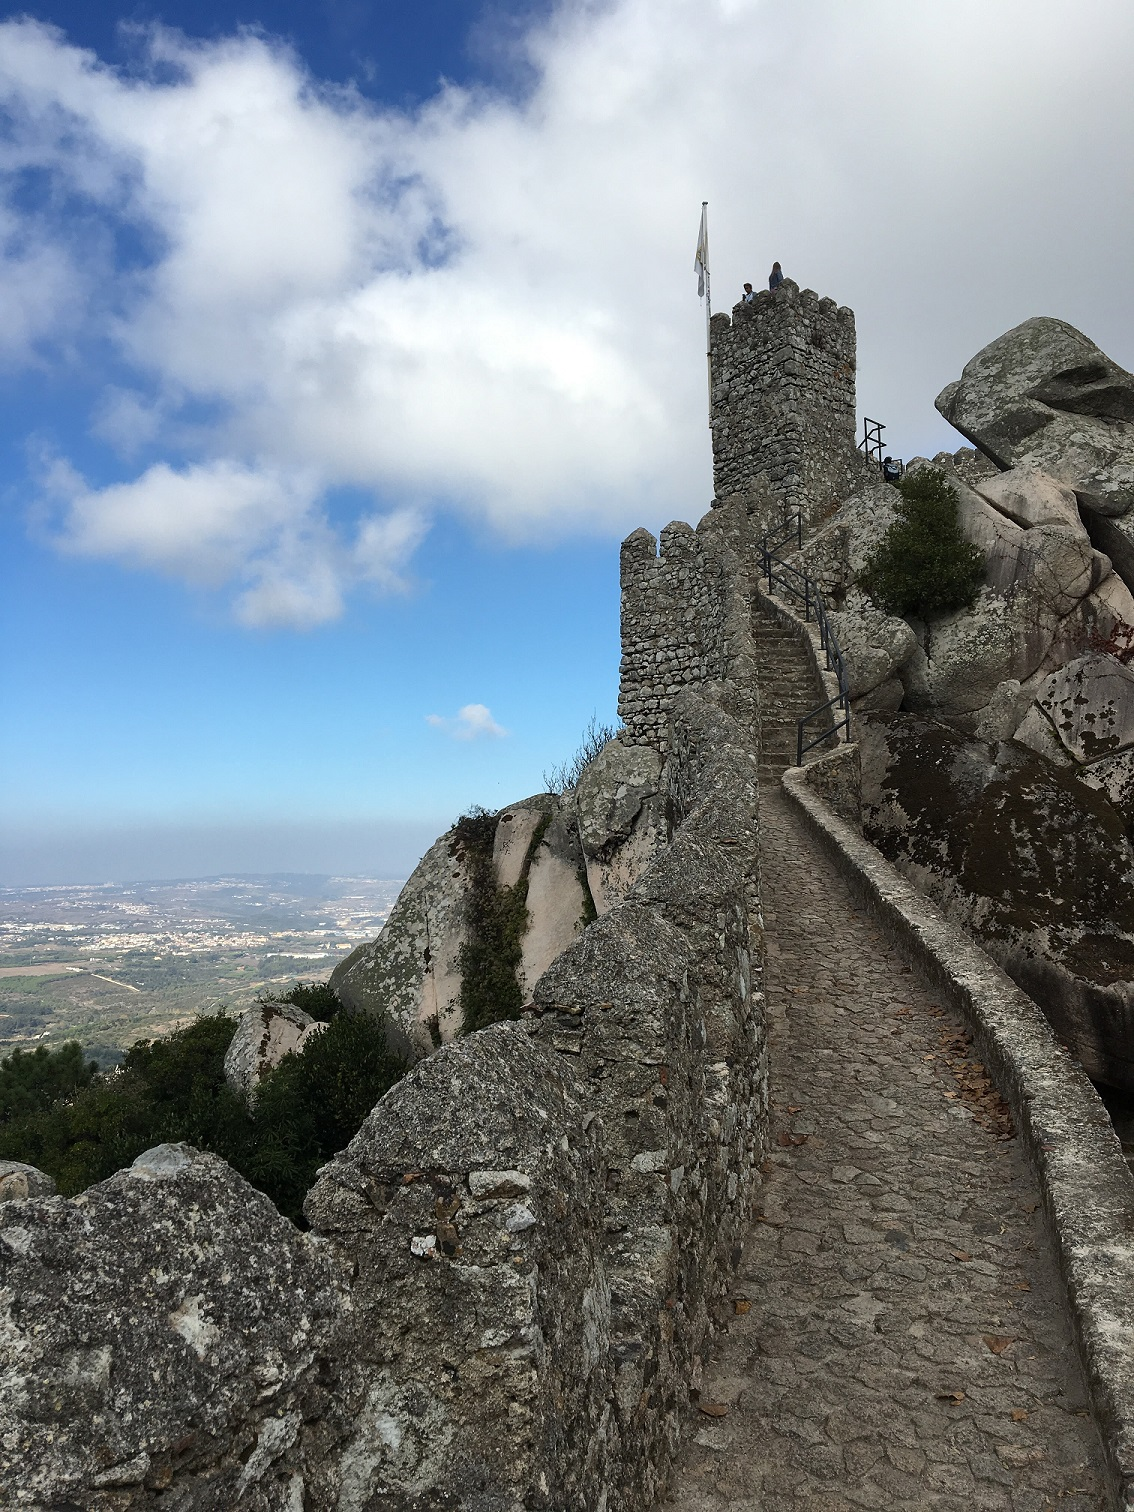 Moorish Castle in Sintra, Portugal